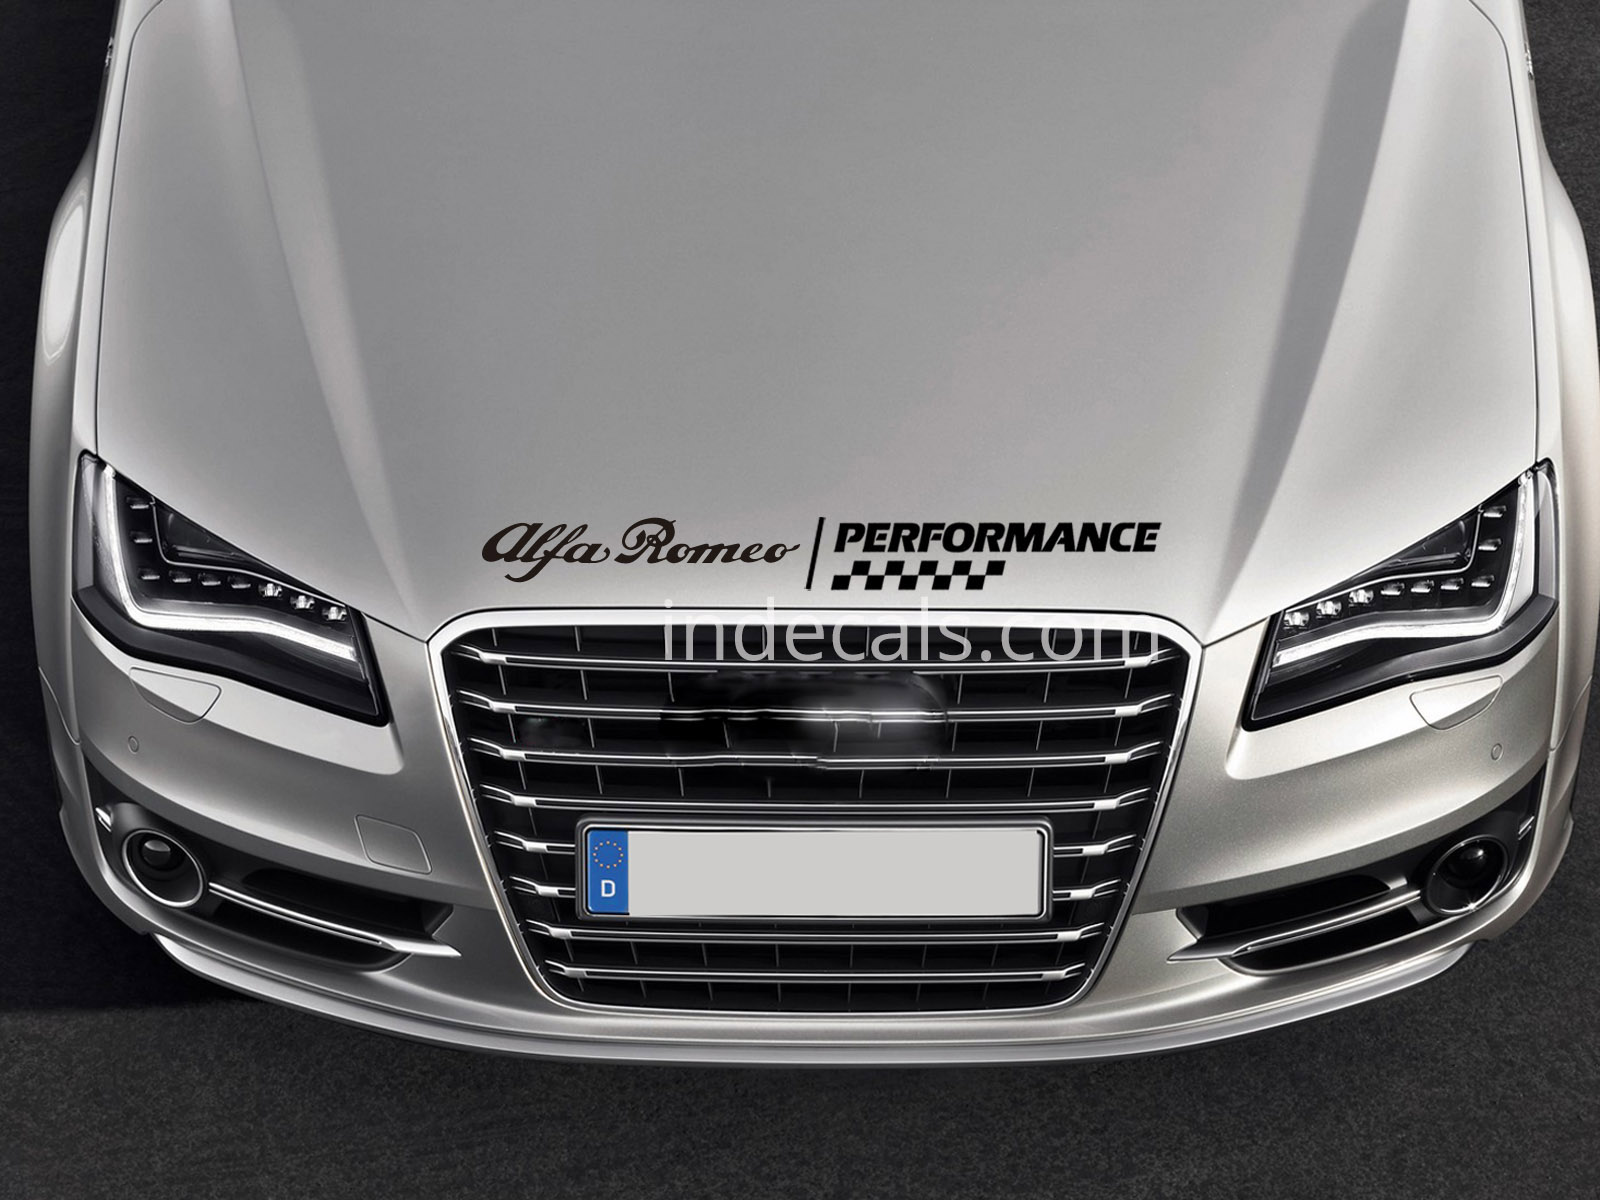 1 x Alfa Romeo Performance Sticker for Bonnet - Black